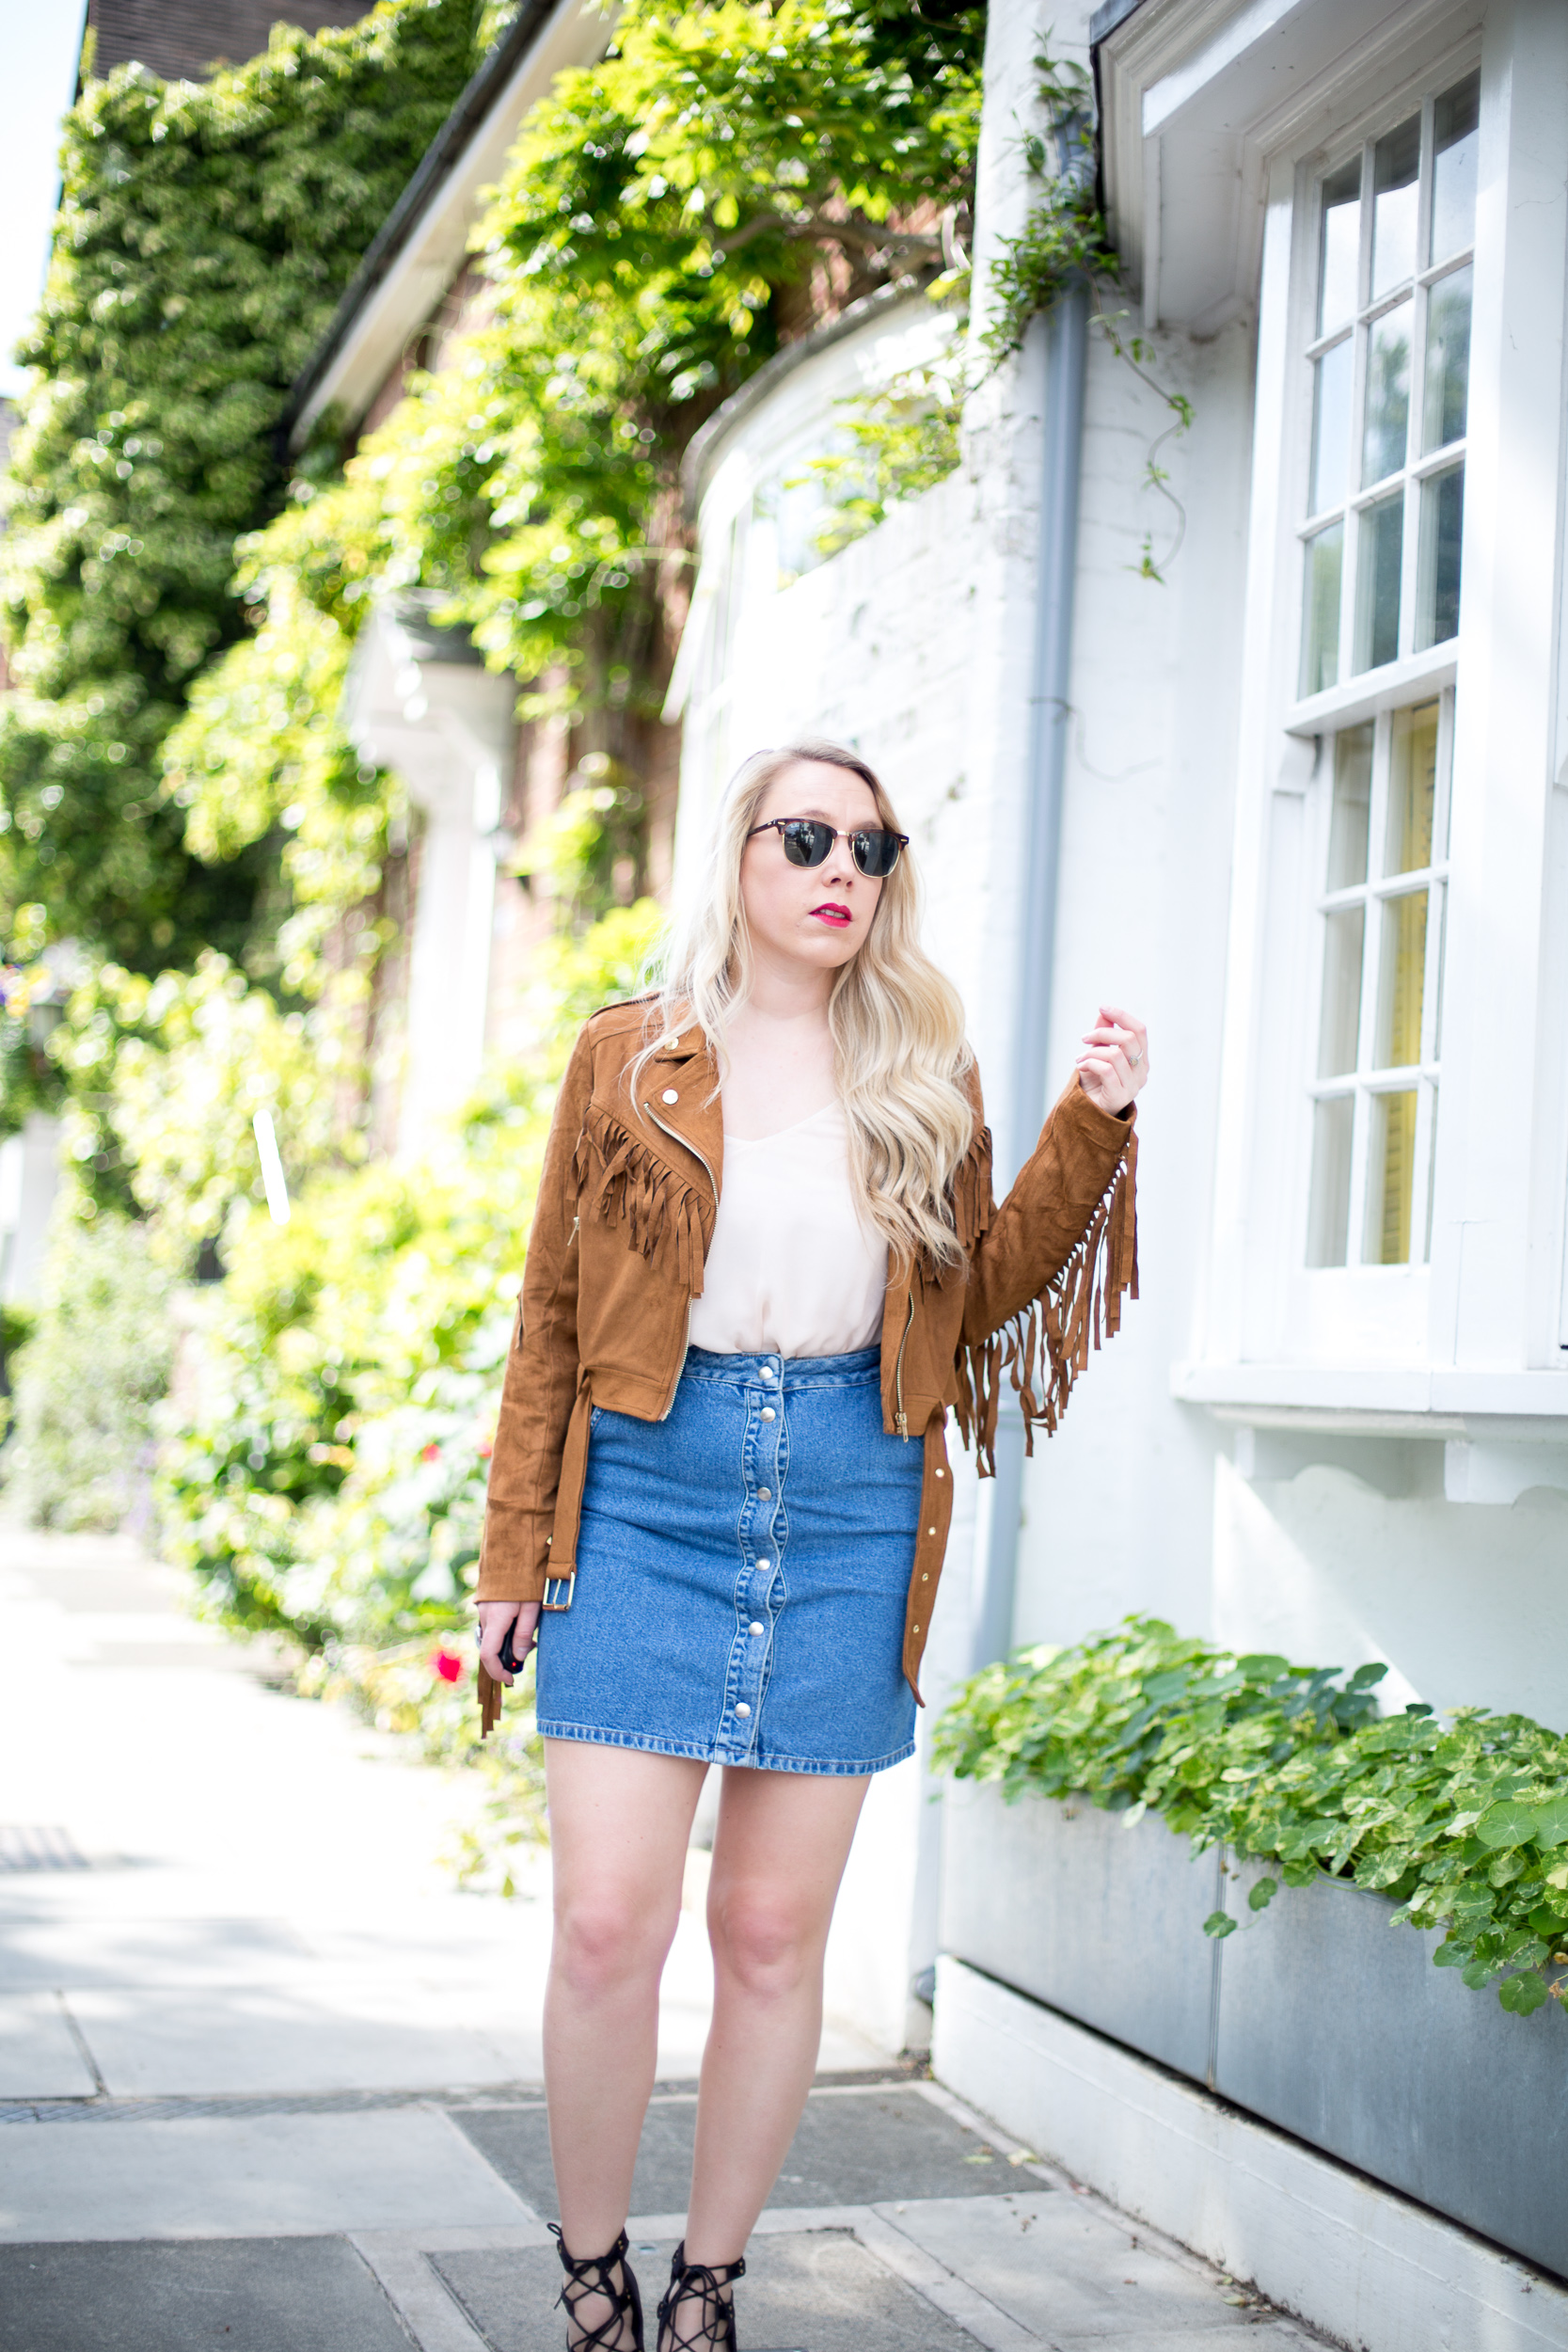 Suede Jacket and Denim Skirt